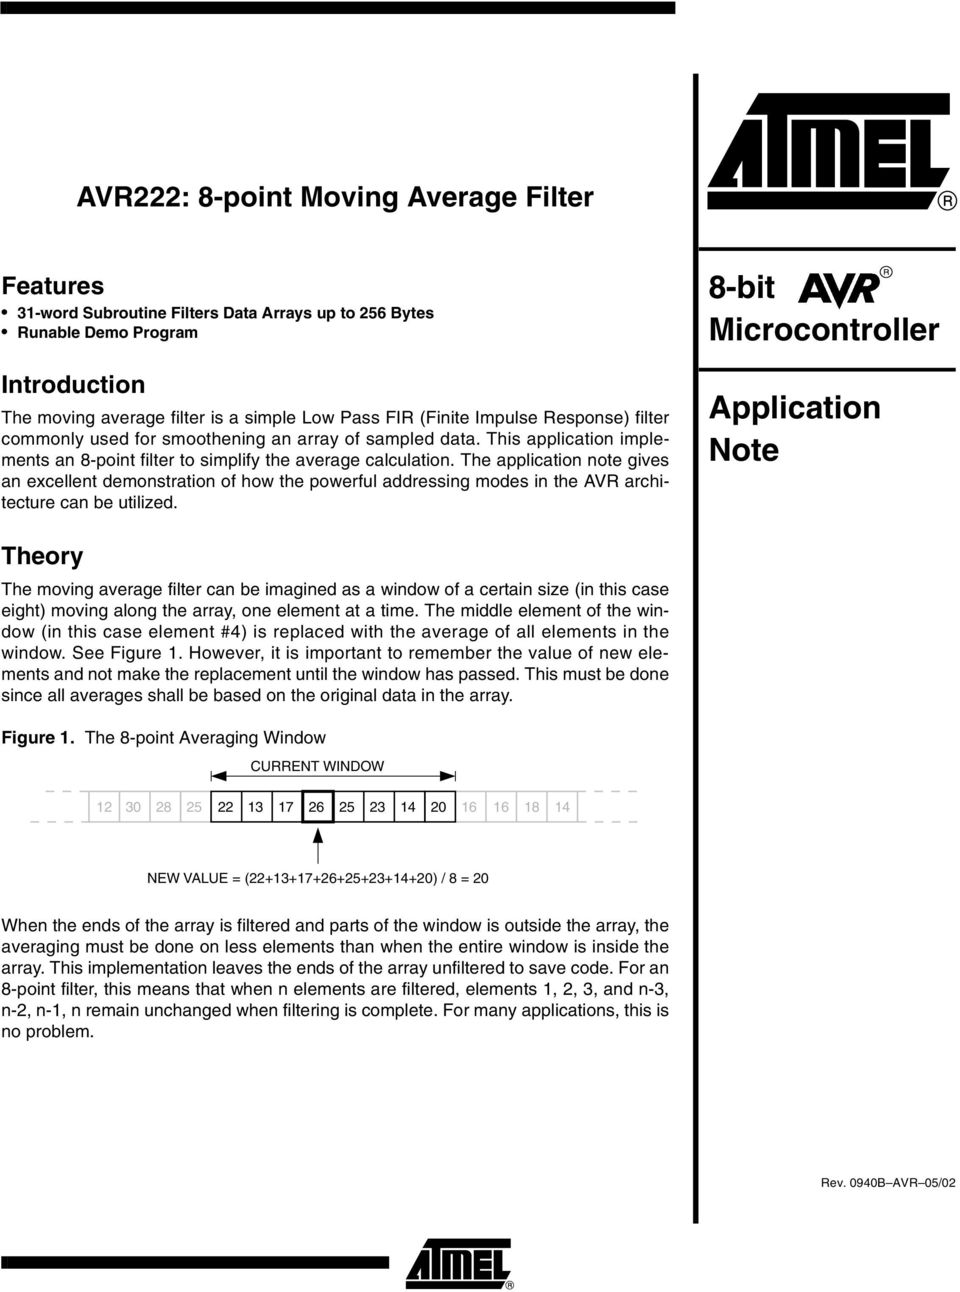 The application note gives an excellent demonstration of how the powerful addressing modes in the AVR architecture can be utilized.